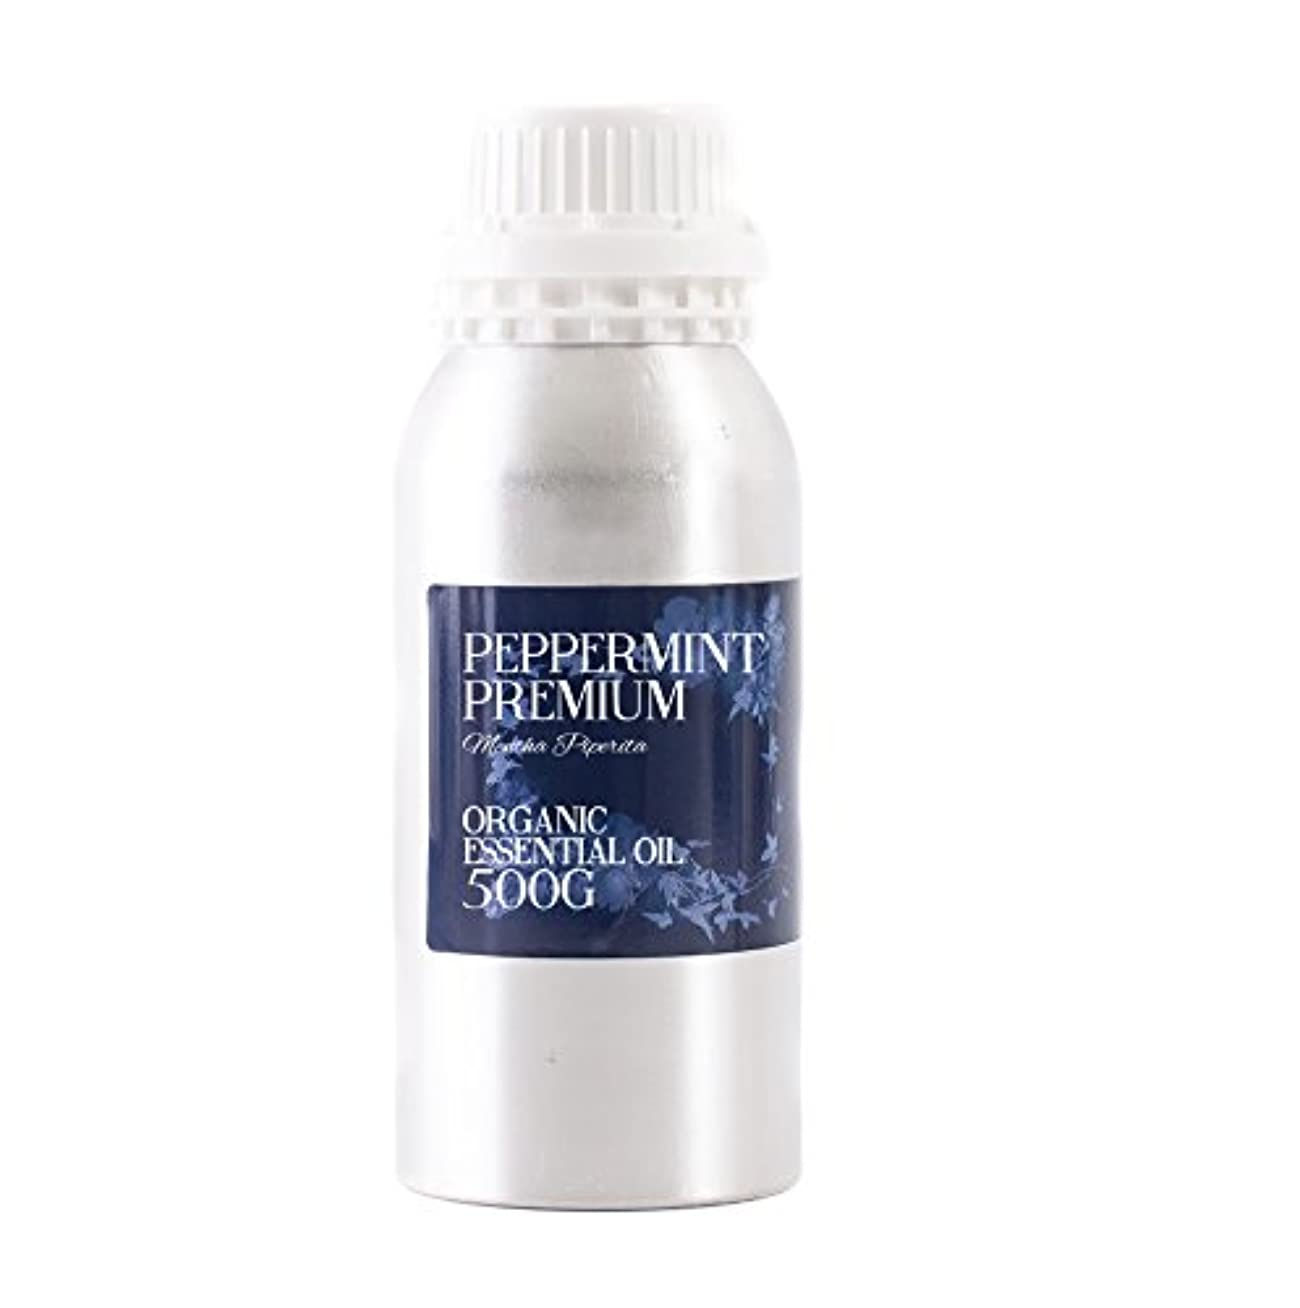 カメラ不従順敵対的Mystic Moments | Peppermint Premium Organic Essential Oil - 500g - 100% Pure